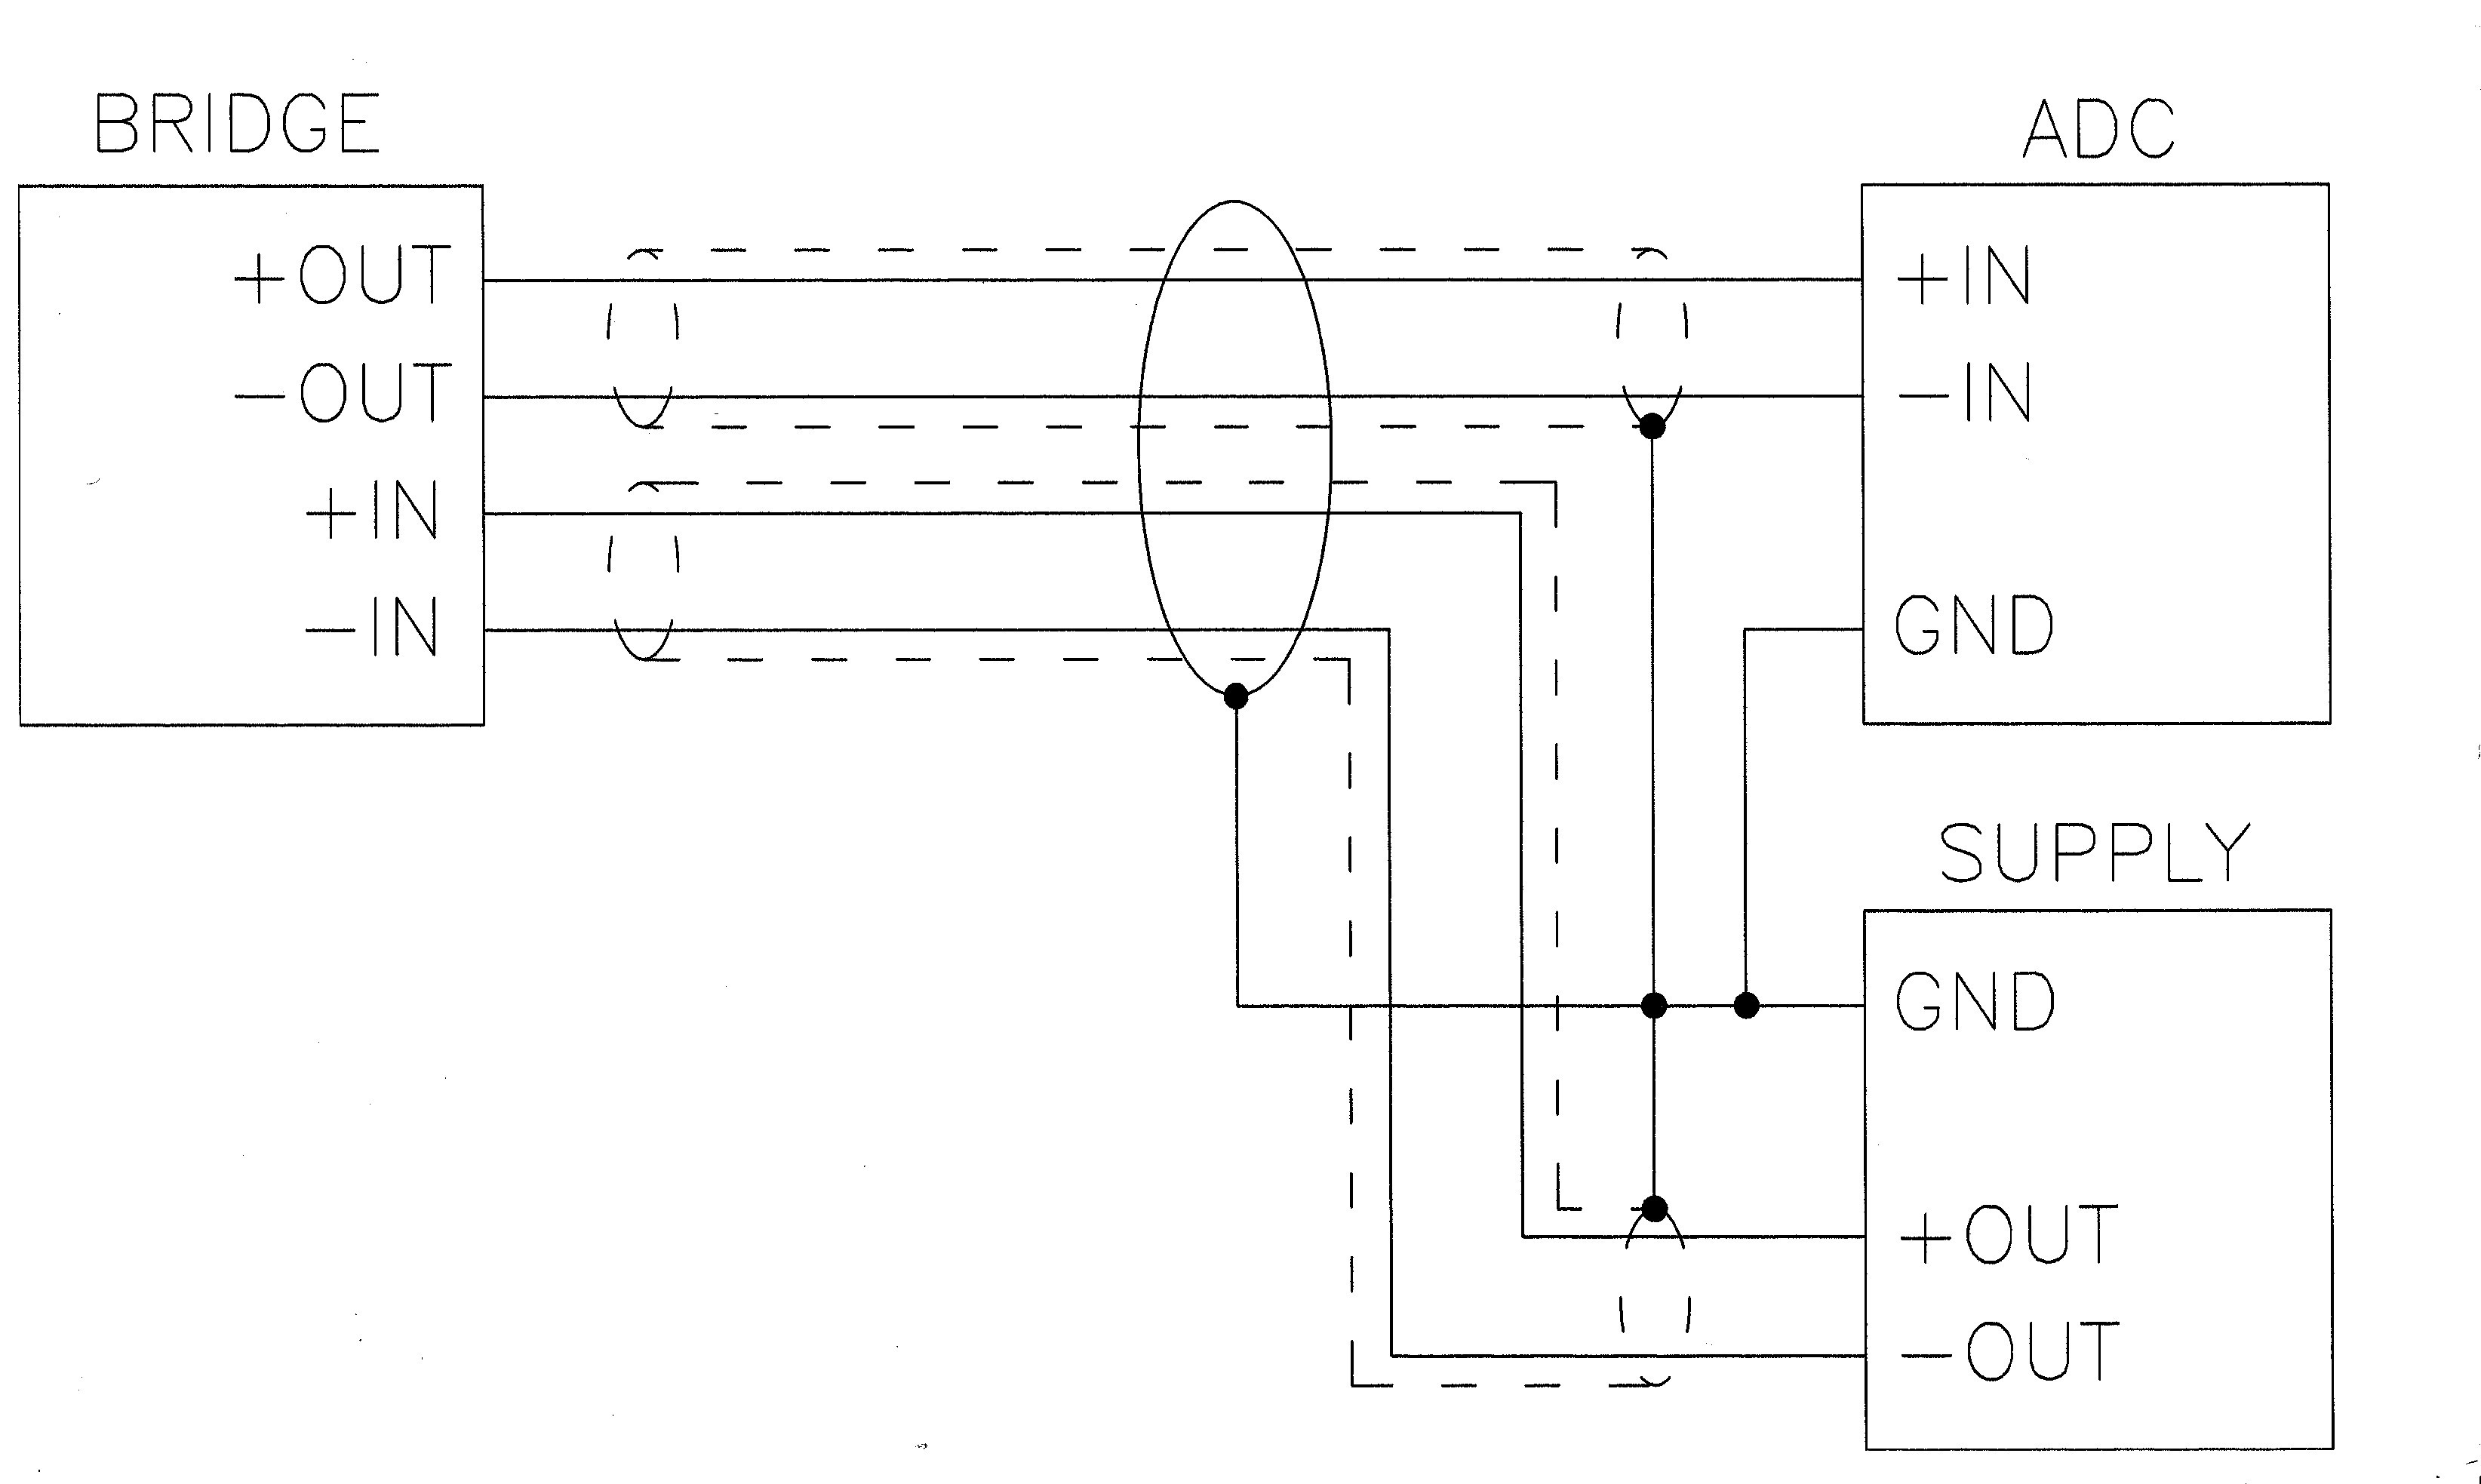 Strain Gauge Load Cell Circuit Diagram New Ponent Strain Gauge Load Cell Principle Dynamometer